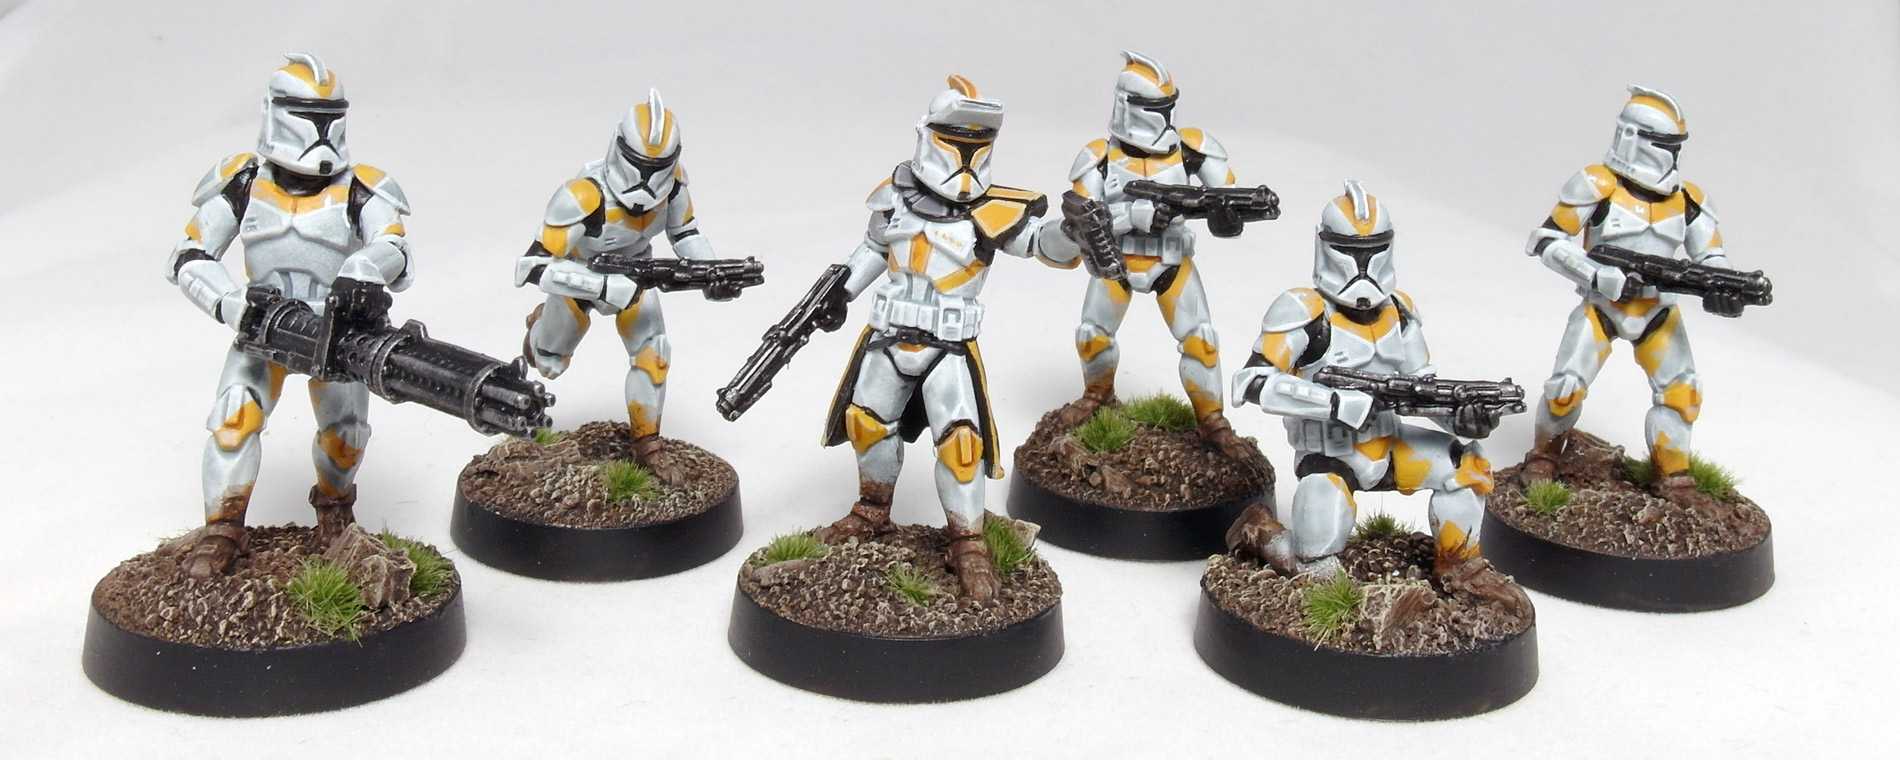 Phase 1 Clone Troopers with Clone Captain